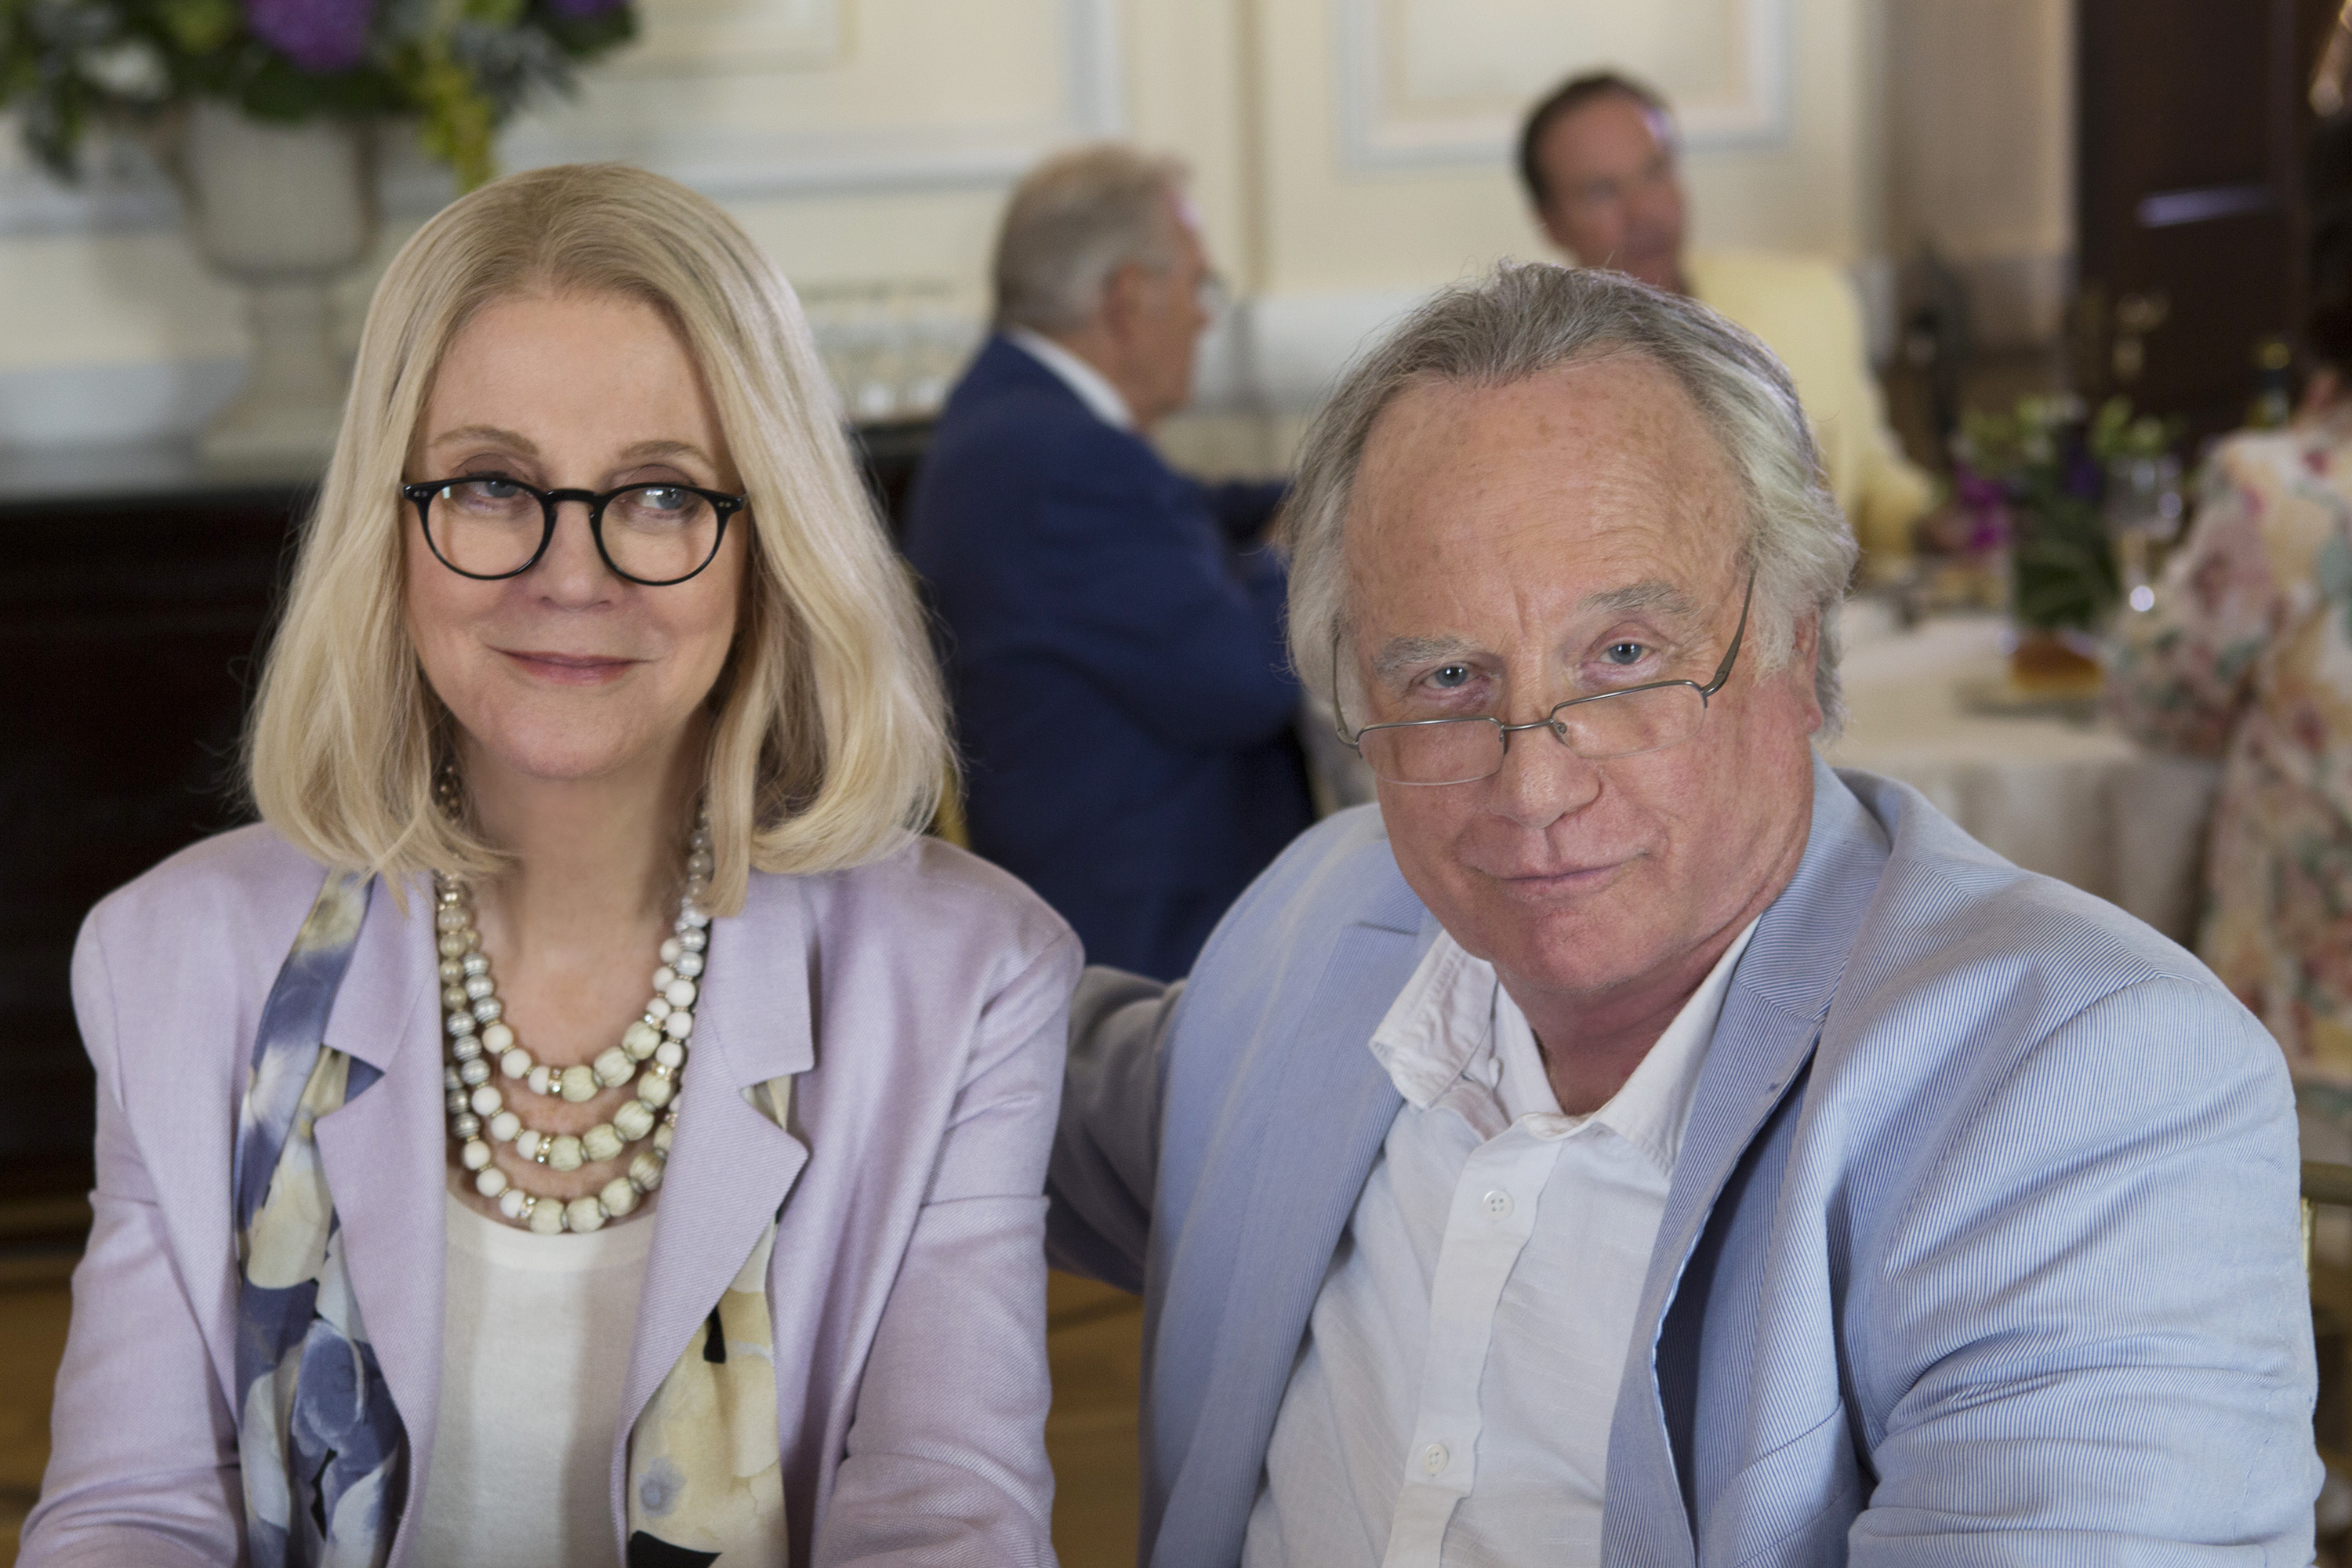 Actors Blythe Danner and Richard Dreyfuss portray Ruth Madoff and Ponzi schemer Bernie Madoff in an ABC miniseries.